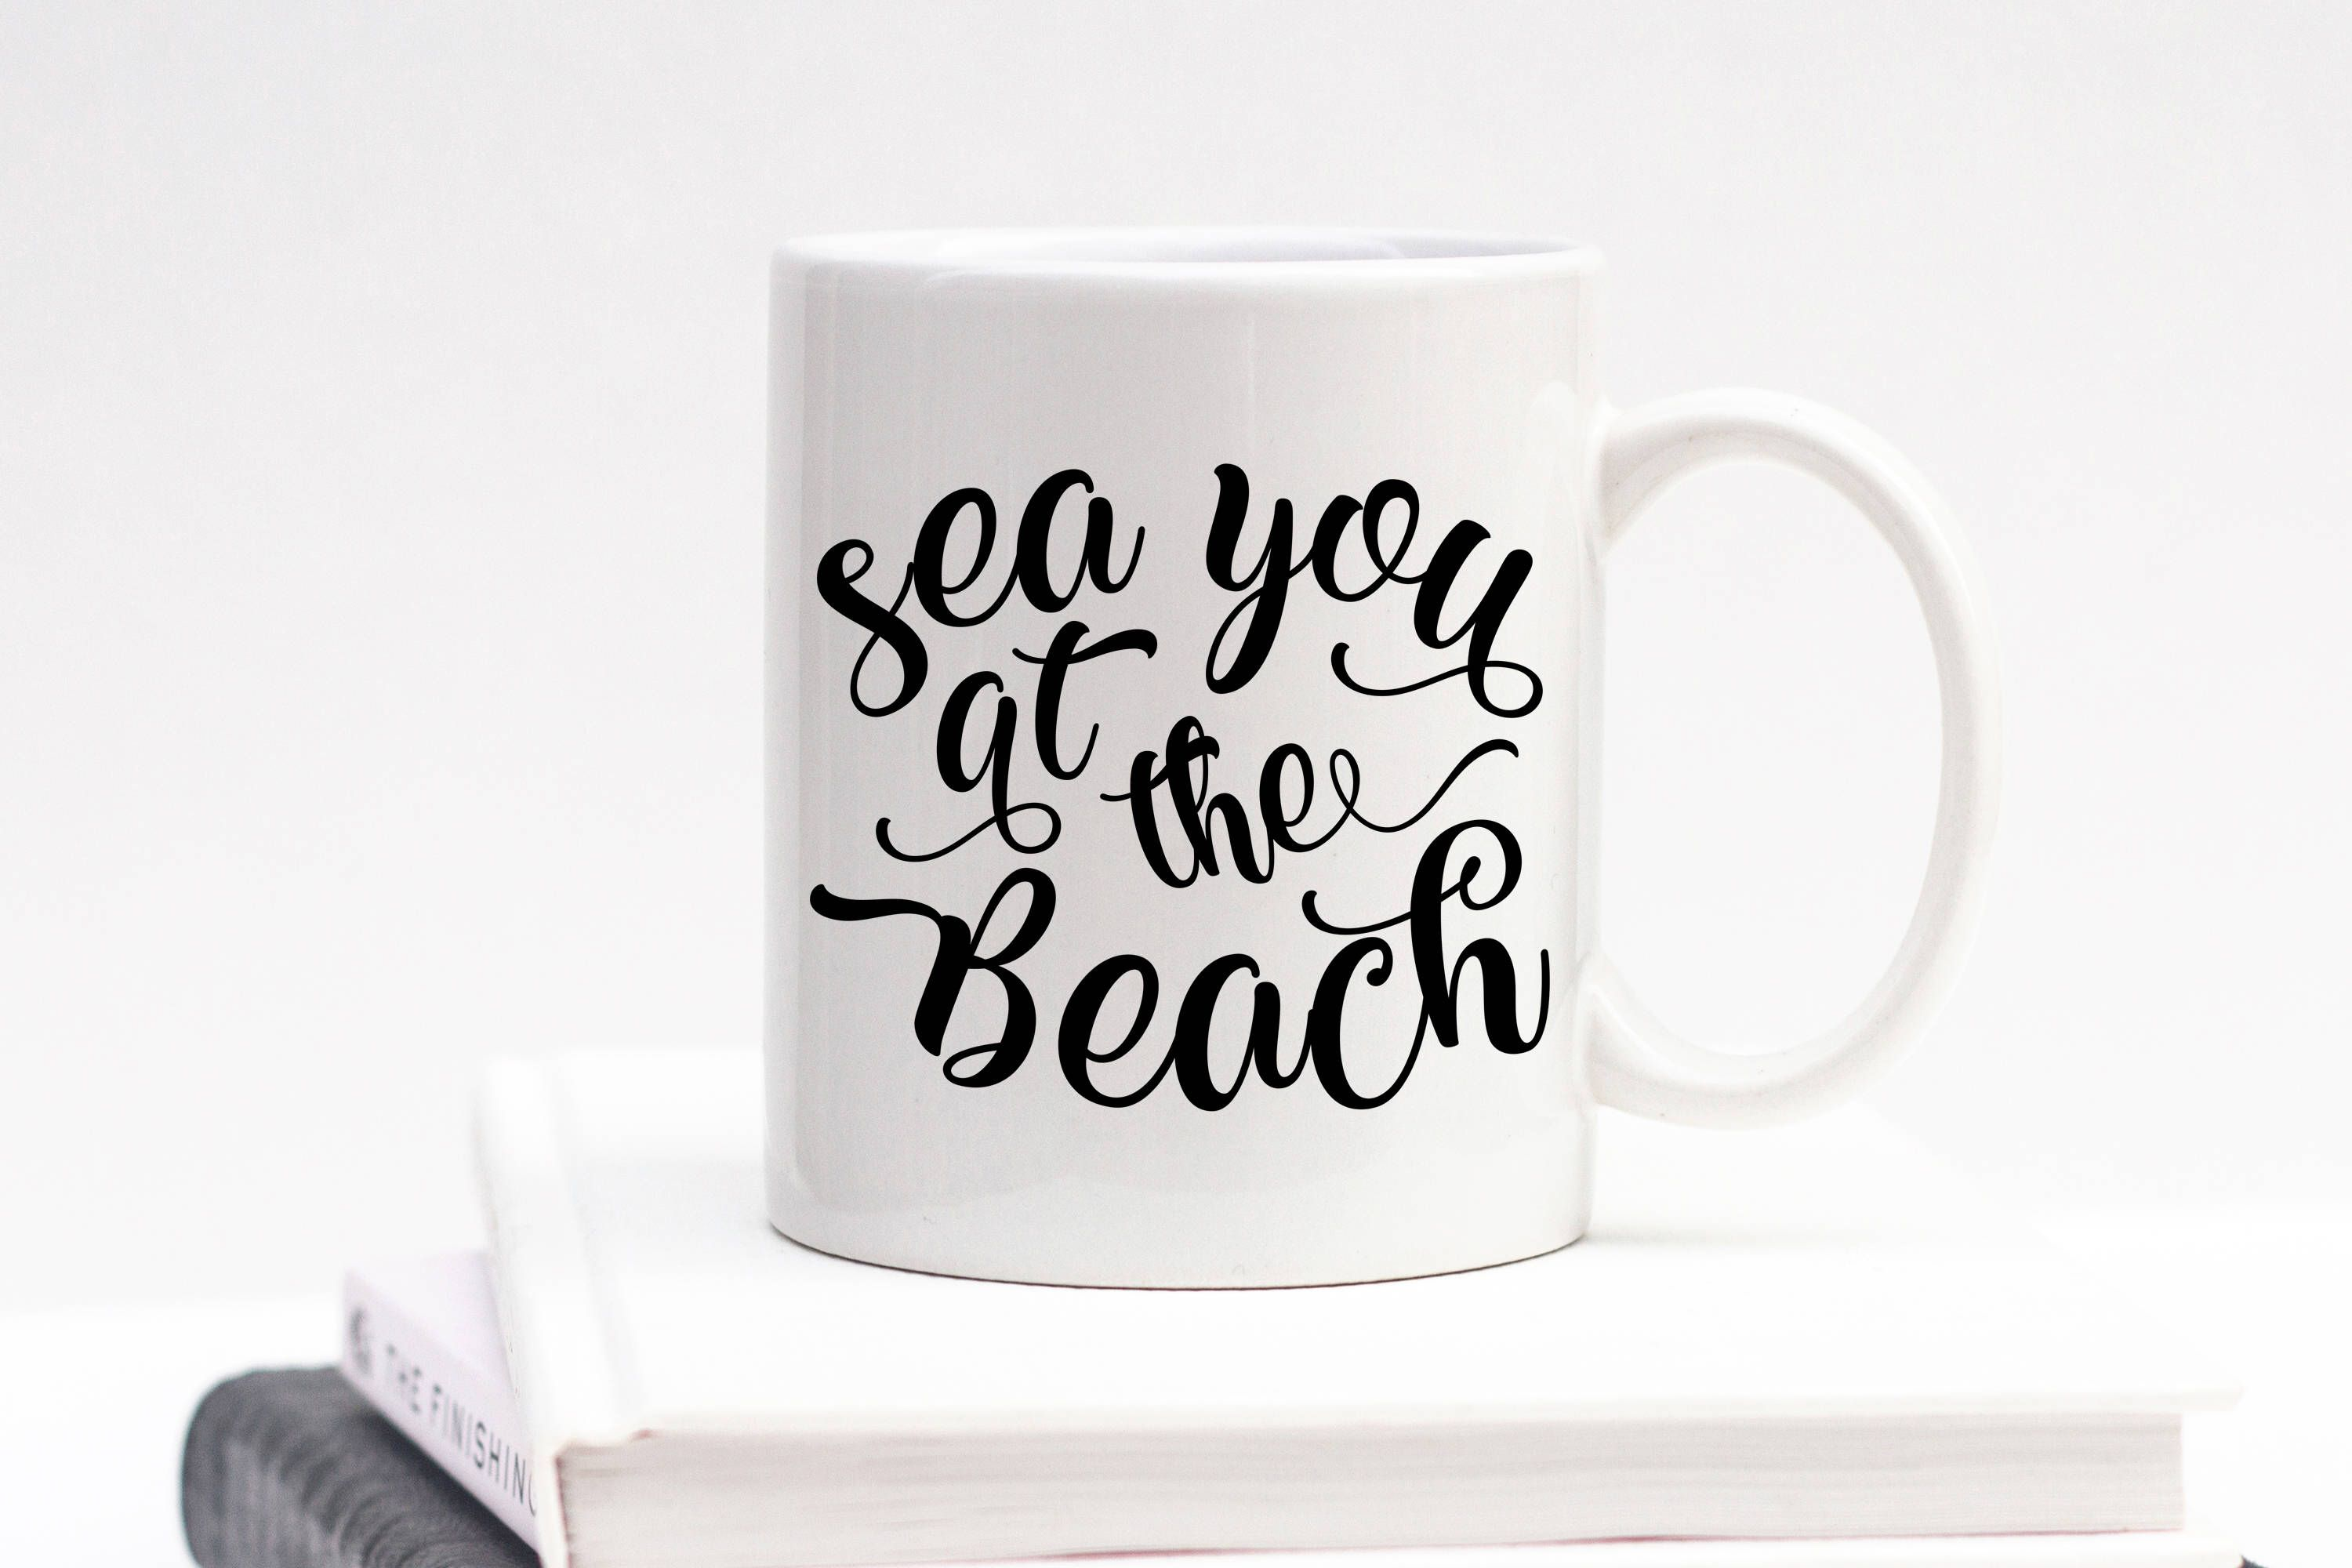 Beach House Gift Ideas Part - 16: Sea You At The Beach Mug, Beach Mug, Beach Gift, Present, Beach